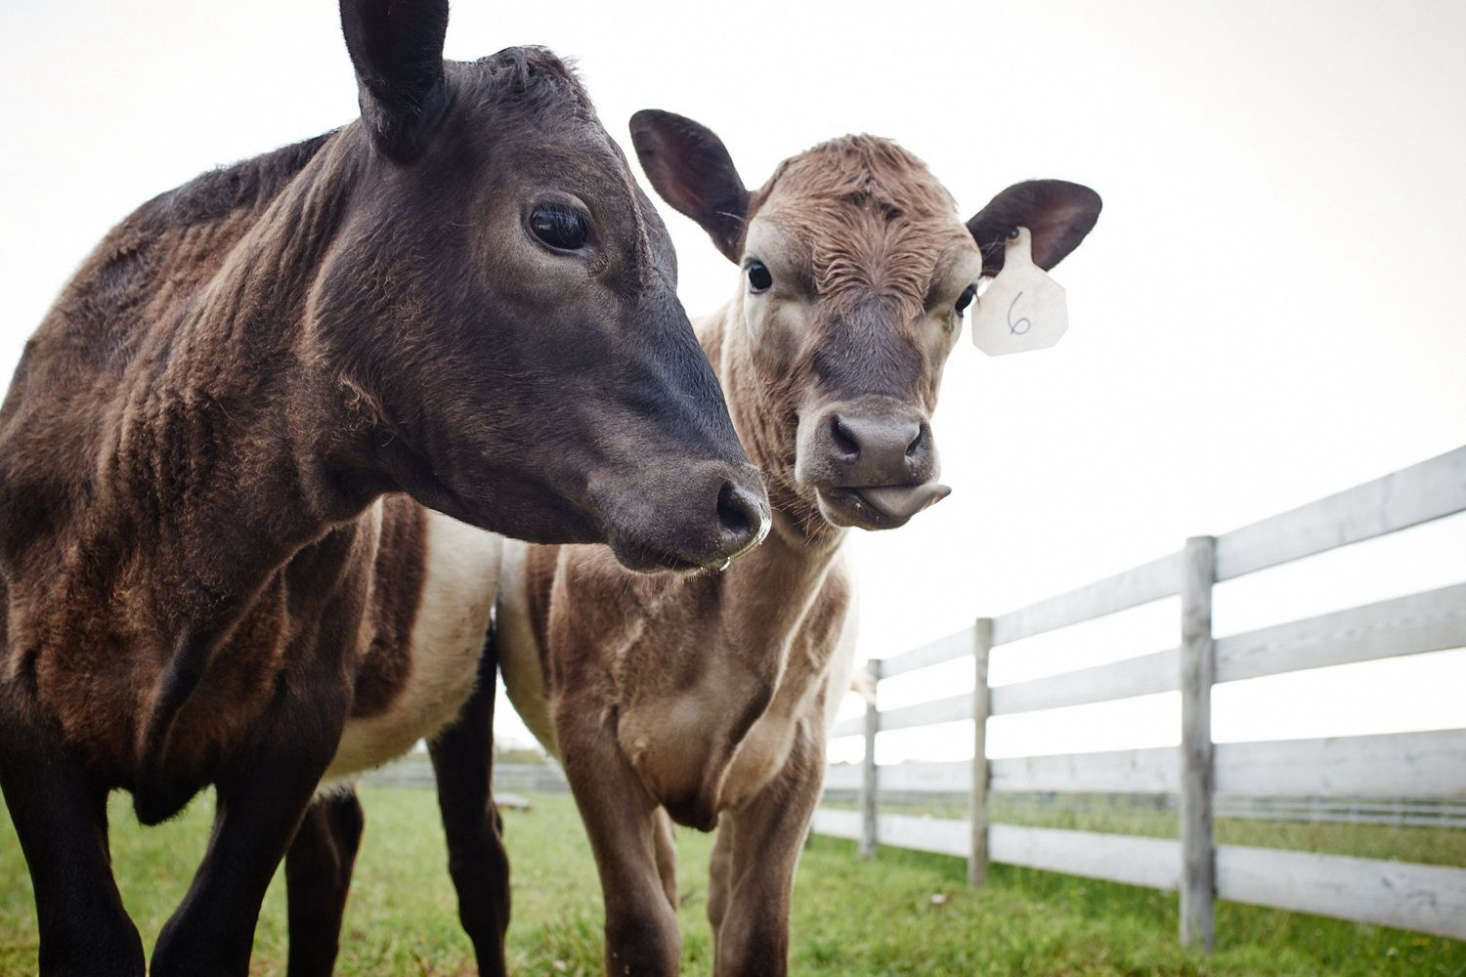 The first three cows to arrive at Grey Barn farm were Thelma, Helen, and Mary Nell. Photograph via Grey Barn.